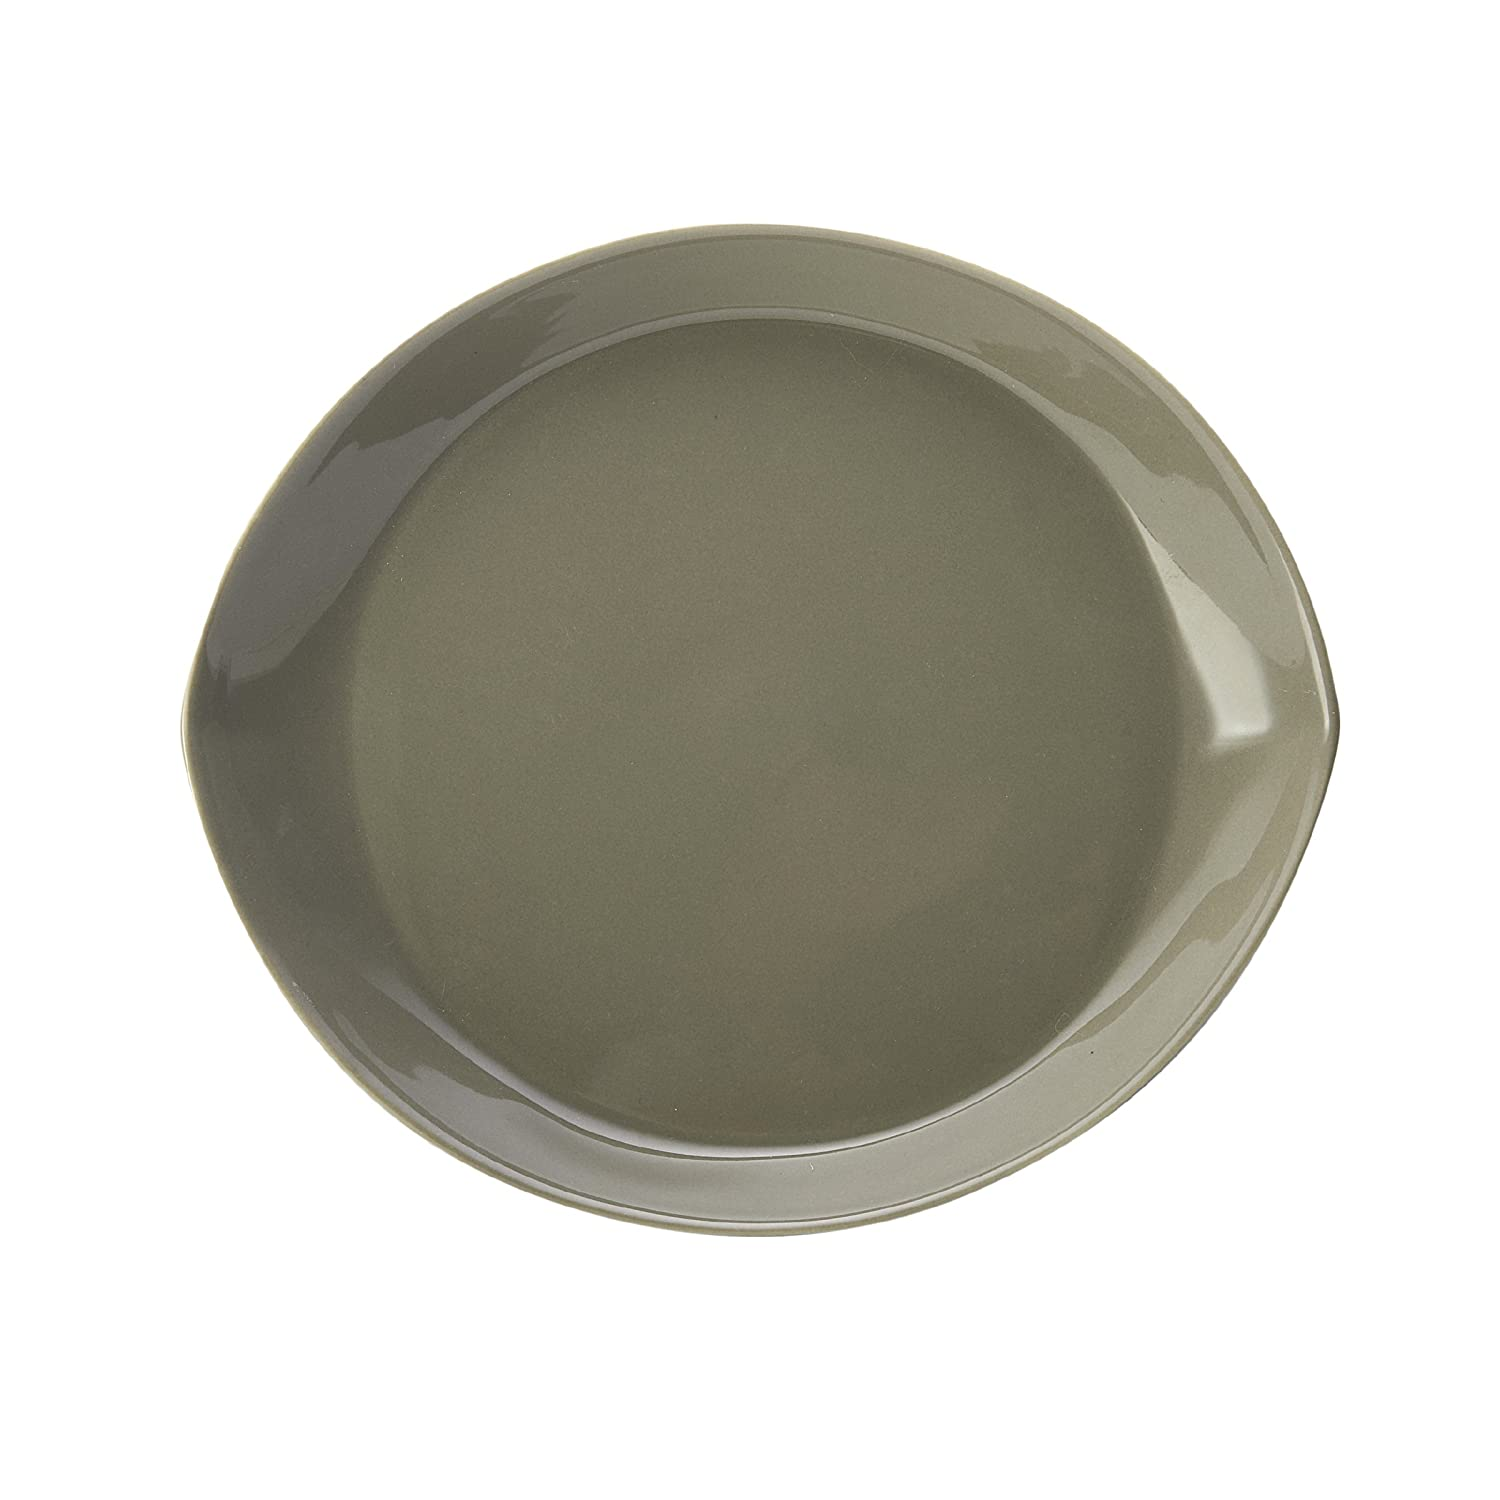 Mikasa Kalini White Dinner Plate 11.25-Inch-by-9.75-Inch